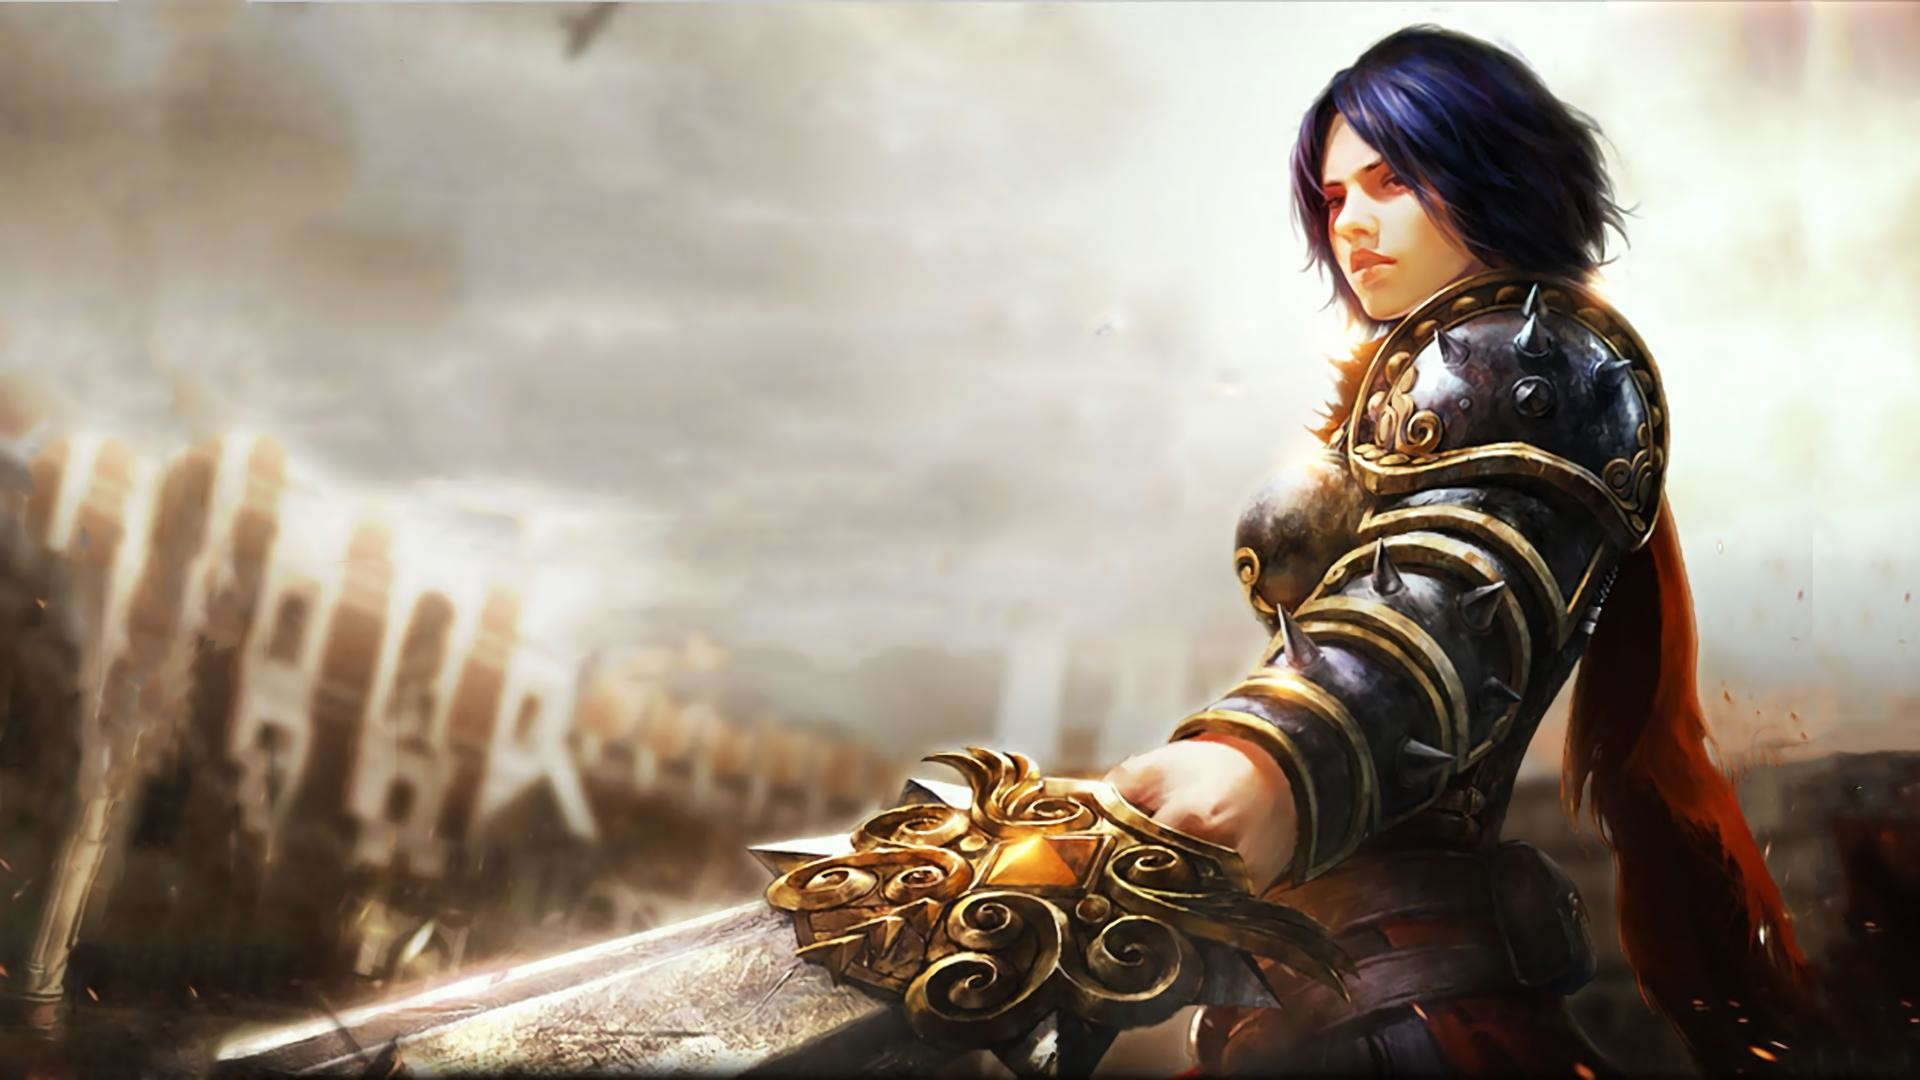 MEDIAI made a Bellona wallpaper from one of the Chinese adds for smite and  thought some people might like it.